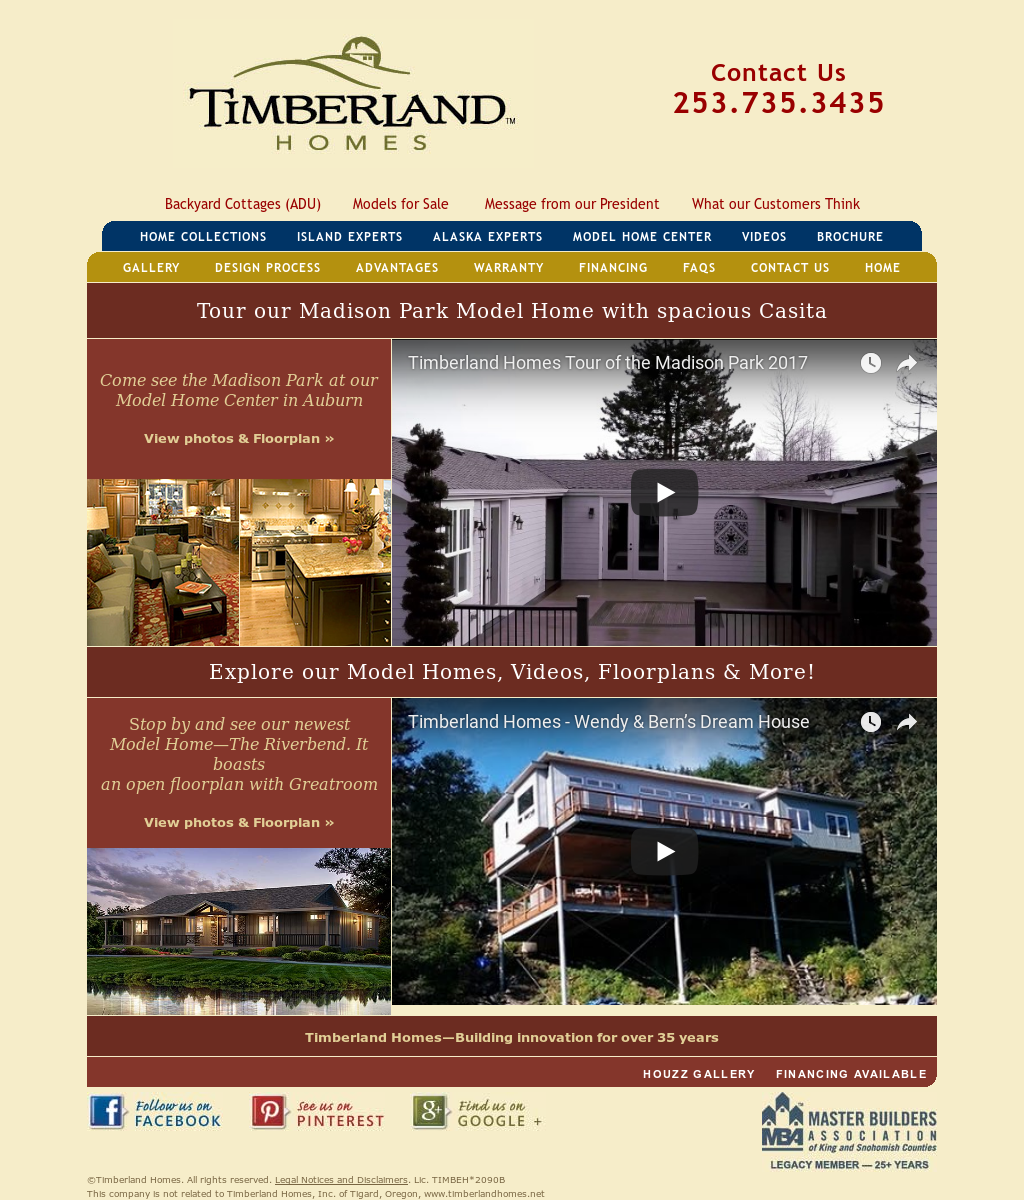 revenue and timberland 2018 3 month transition period ended march 31, 2018 mar 31, 2018 pdf html.